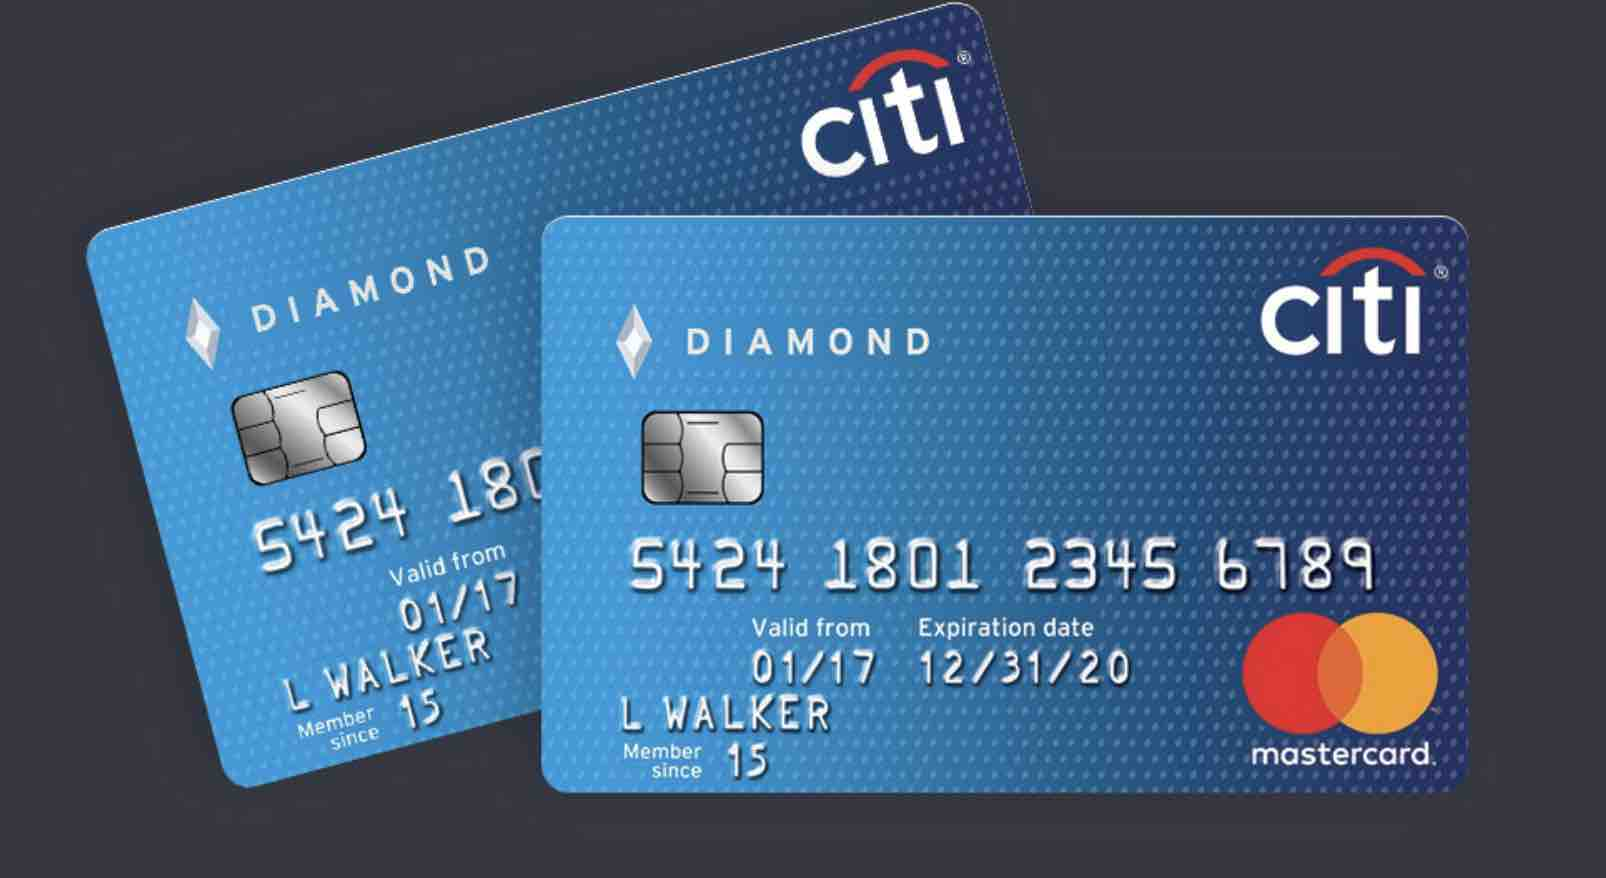 A brief guide on the process of applying for a Citibank credit